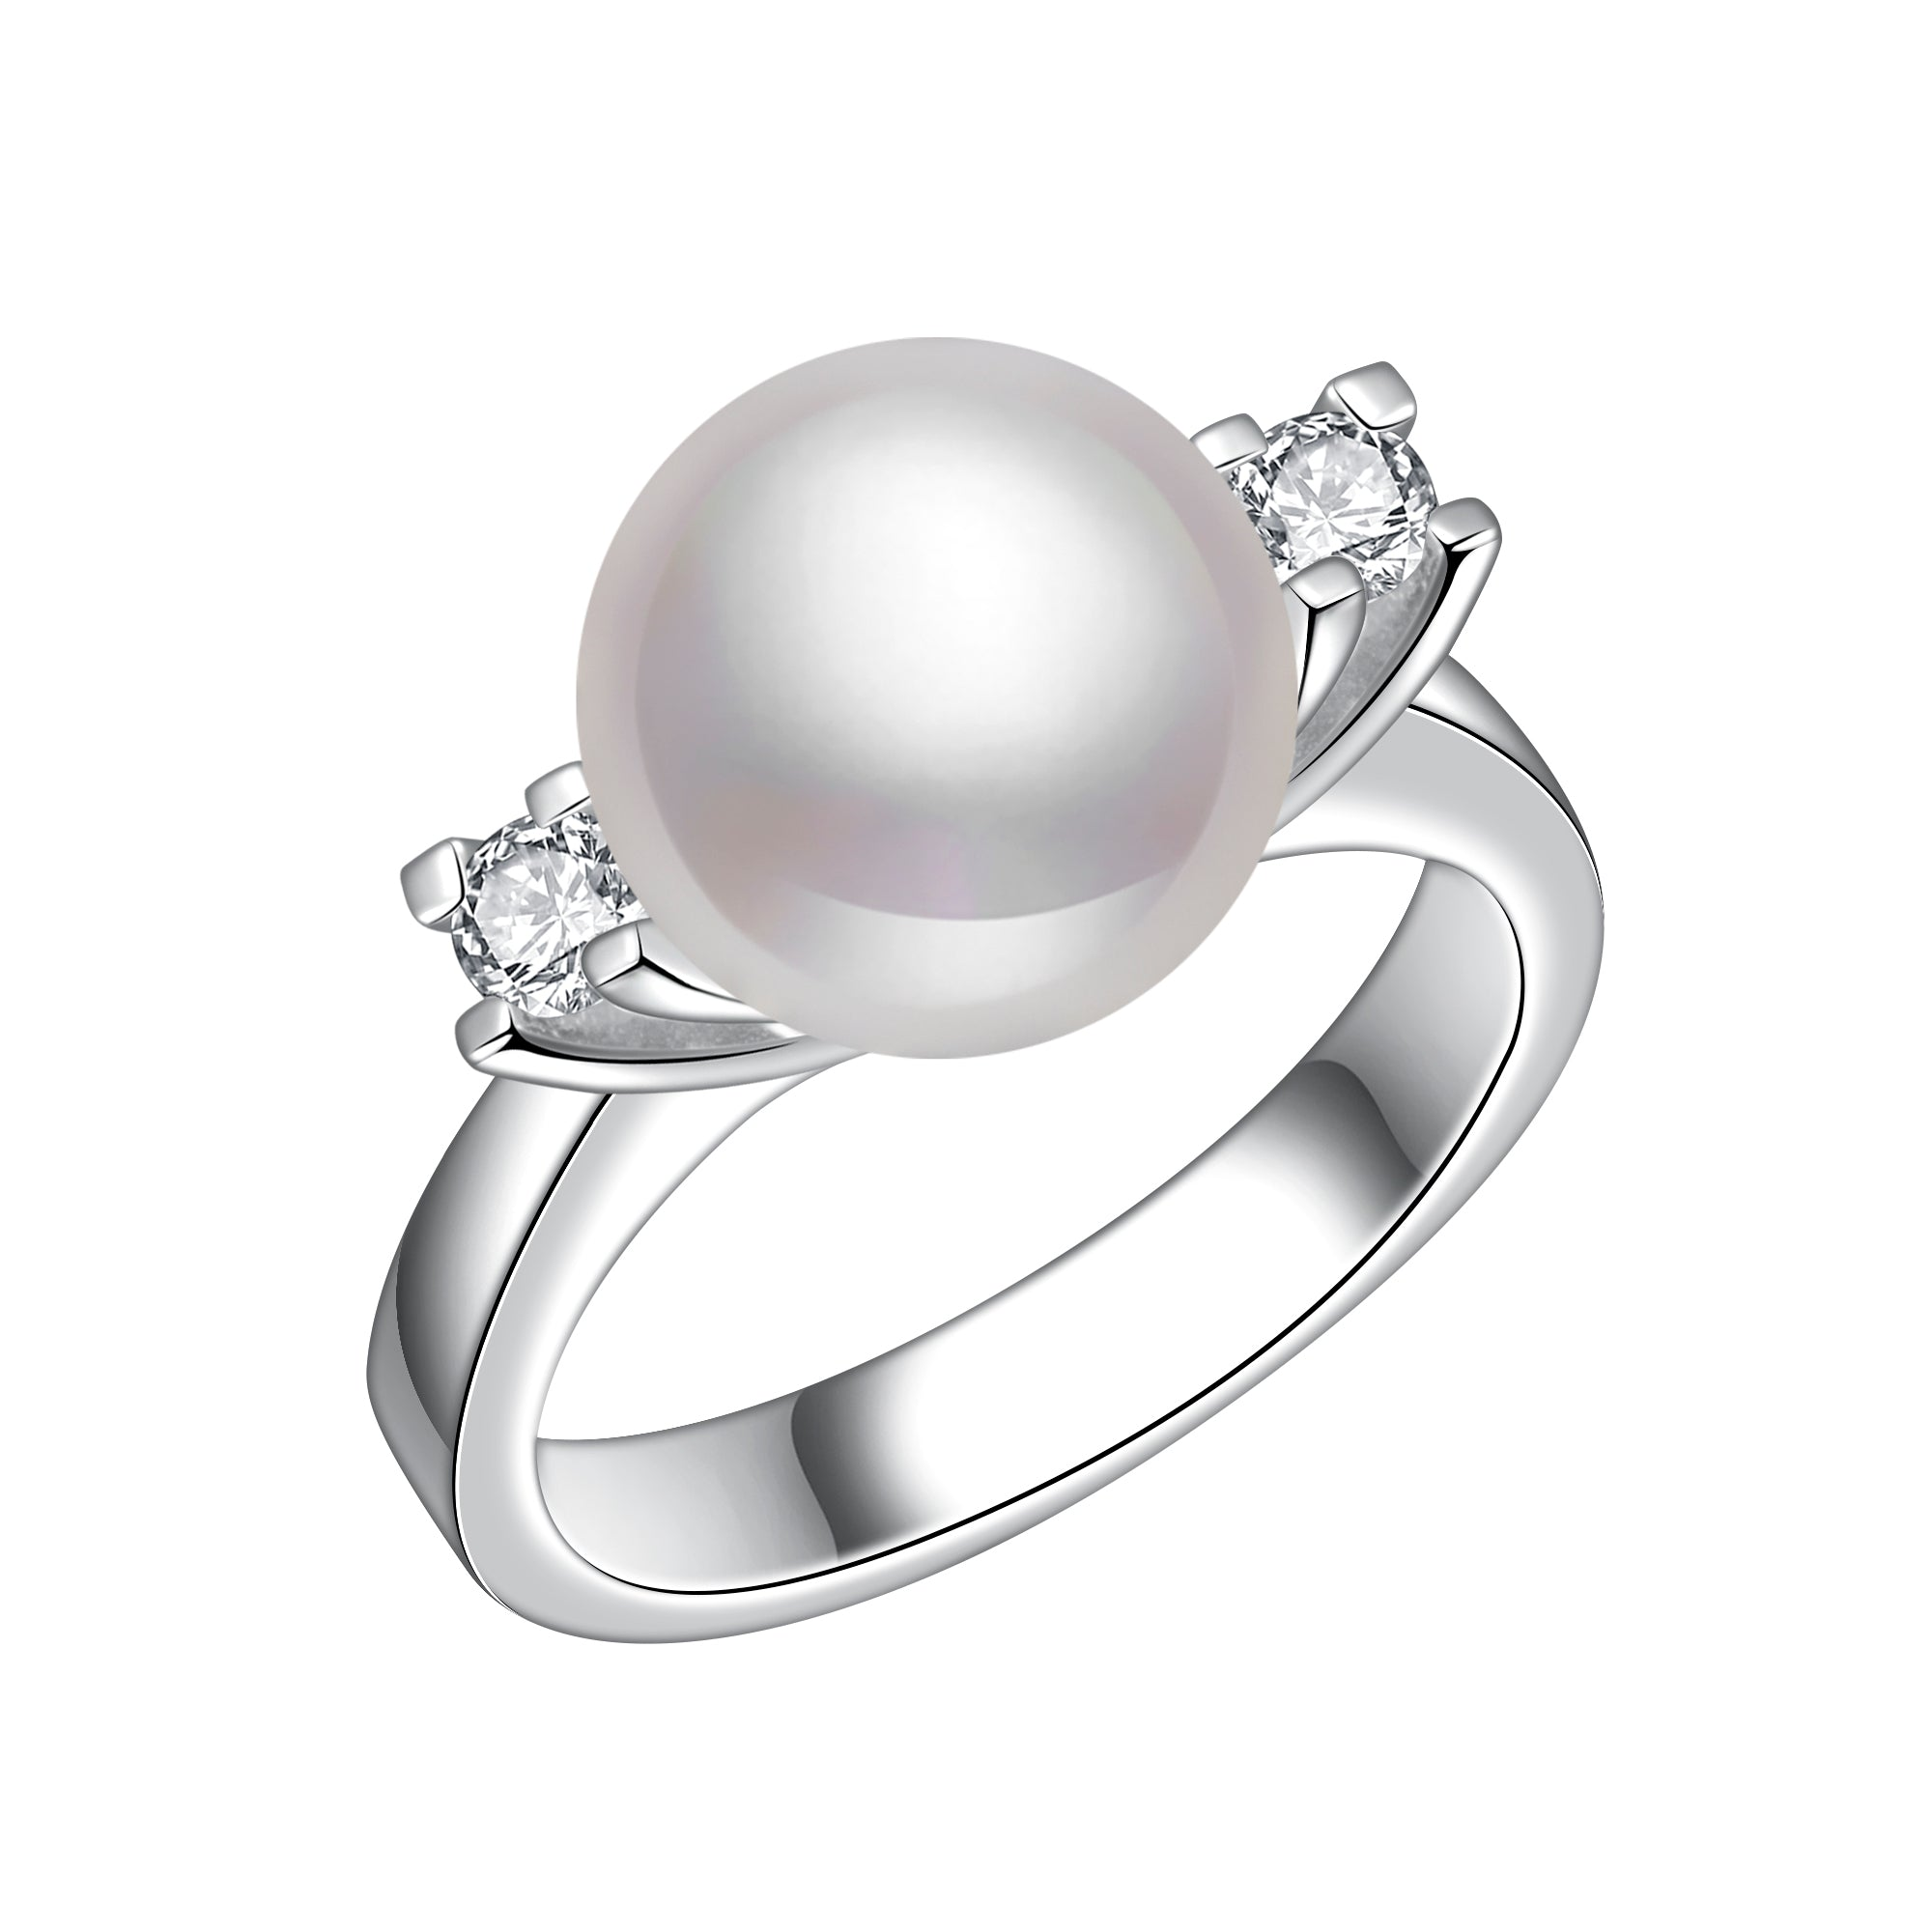 uk vintage engagement diamond pearl rings ring wedding pinterest band